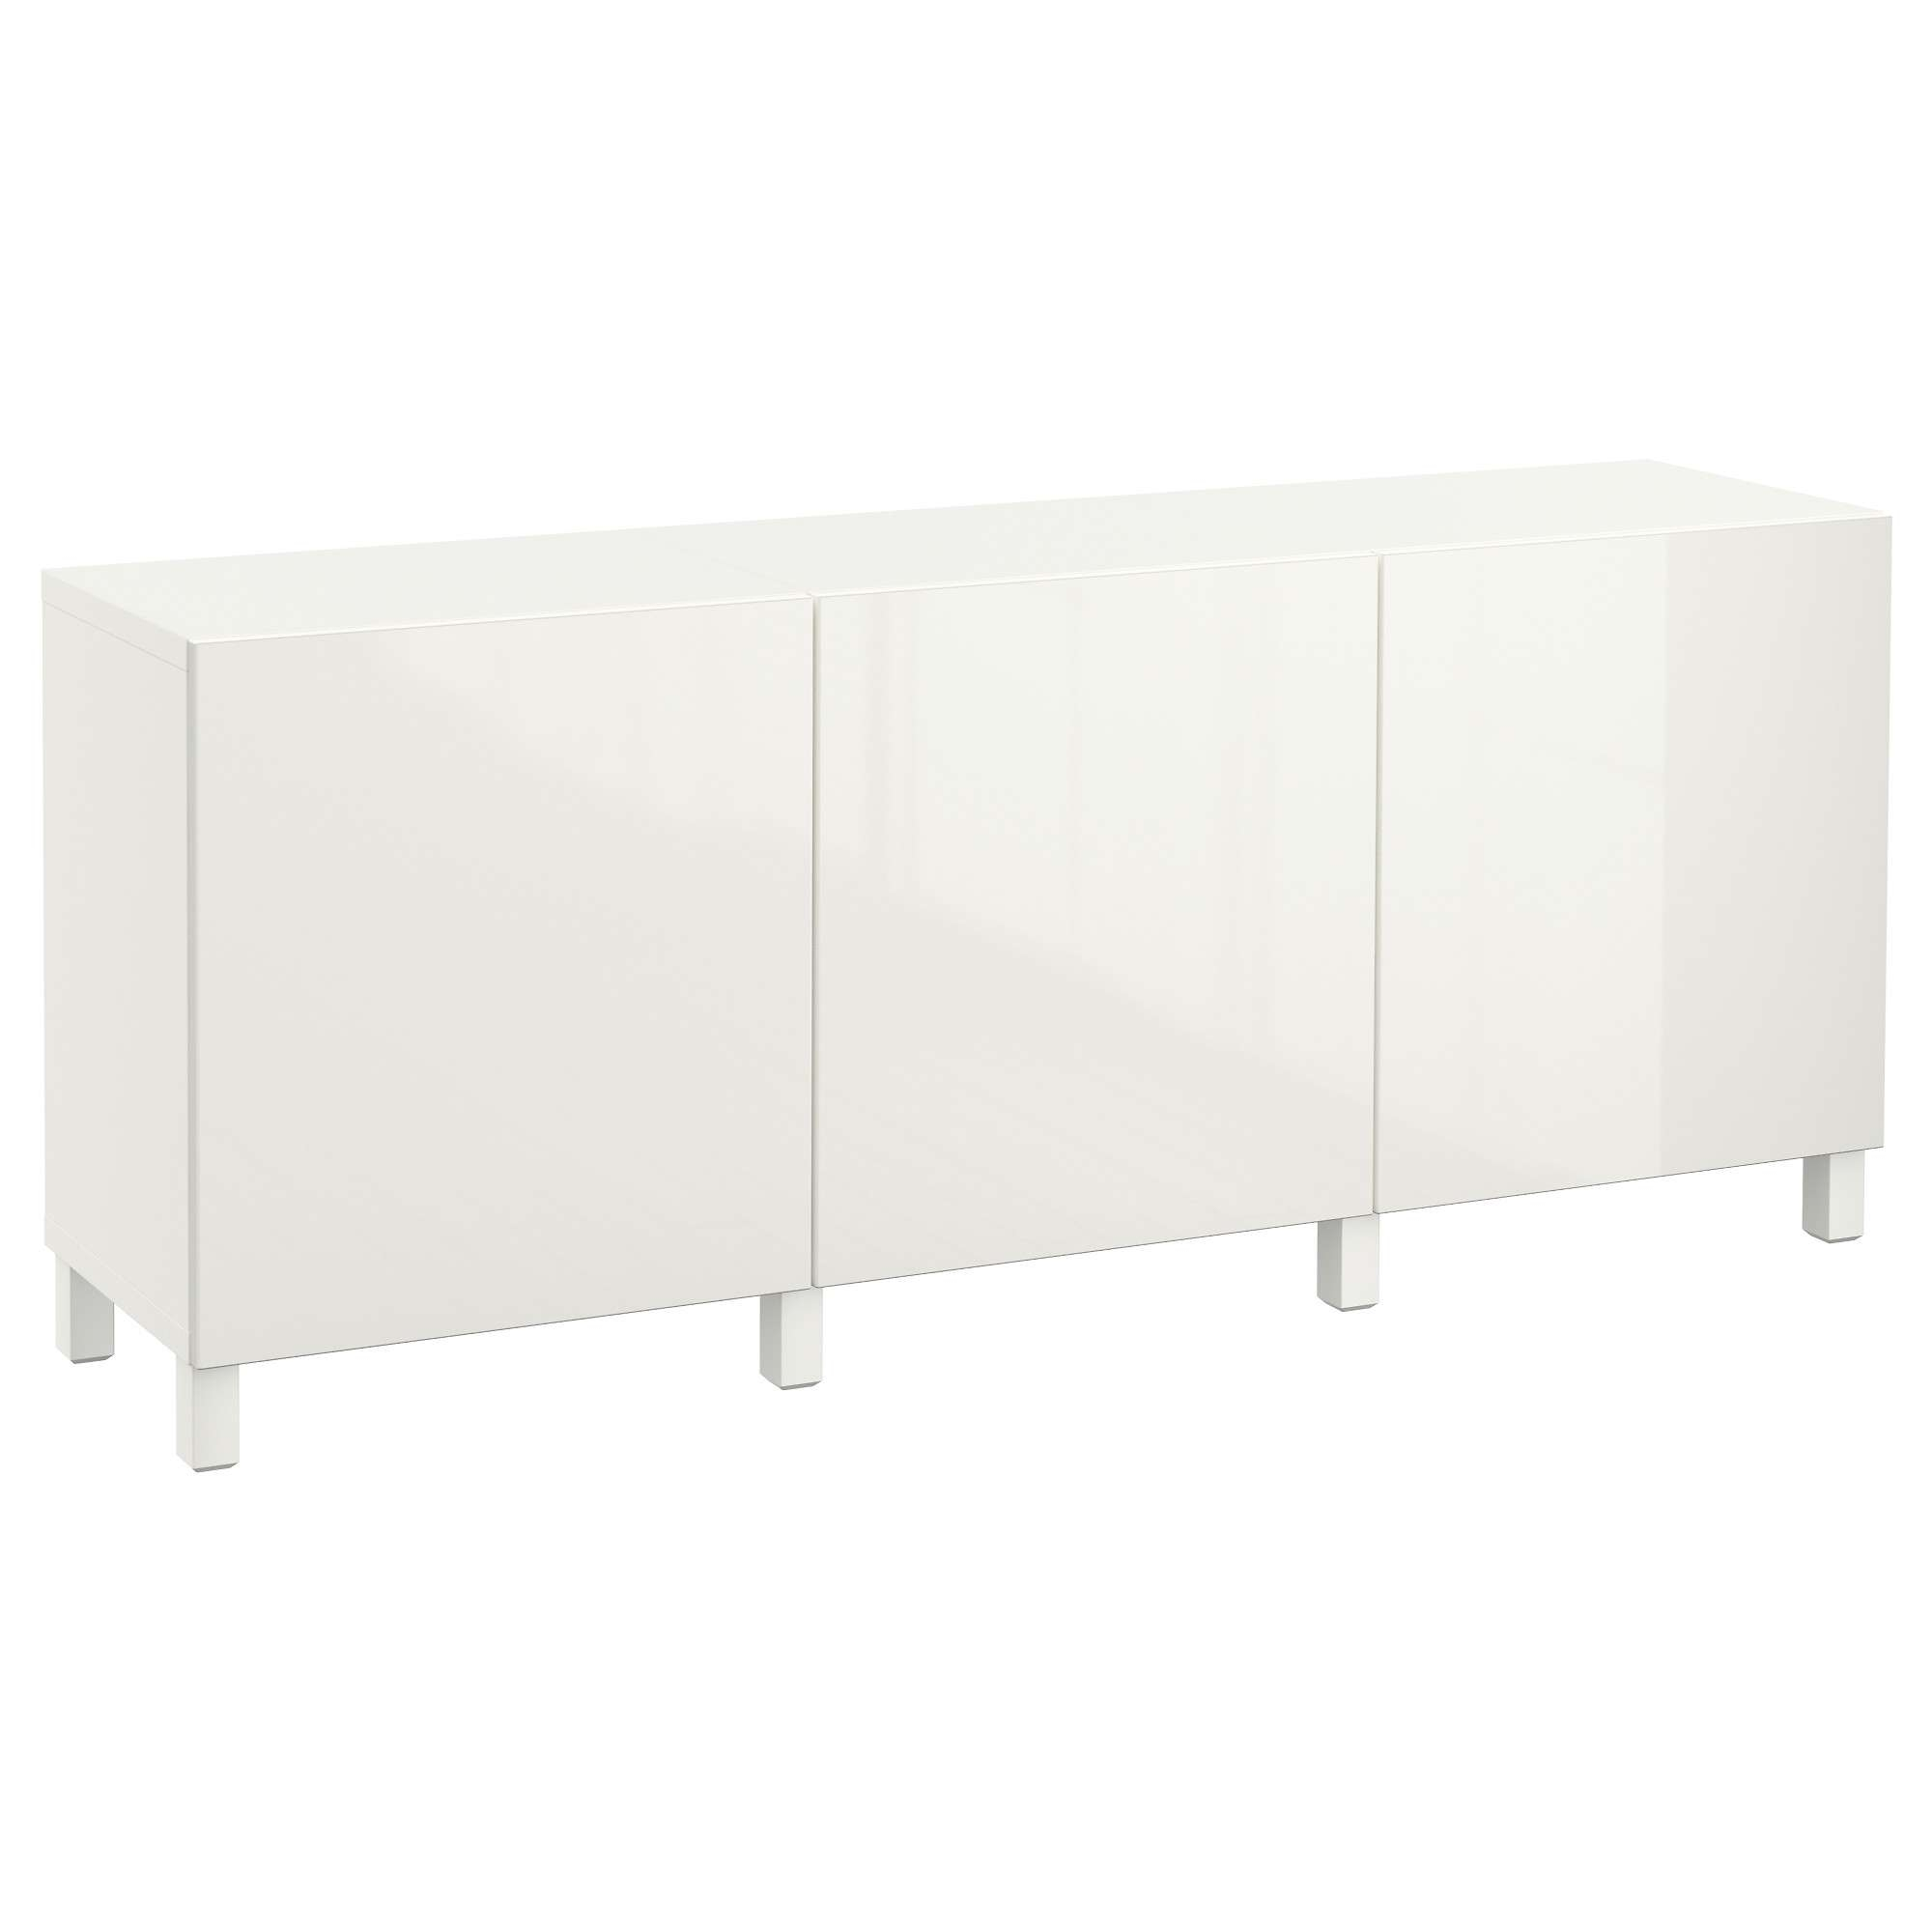 Bestå Storage Combination With Doors – White/selsviken High Gloss Regarding Storage Sideboards (View 2 of 20)